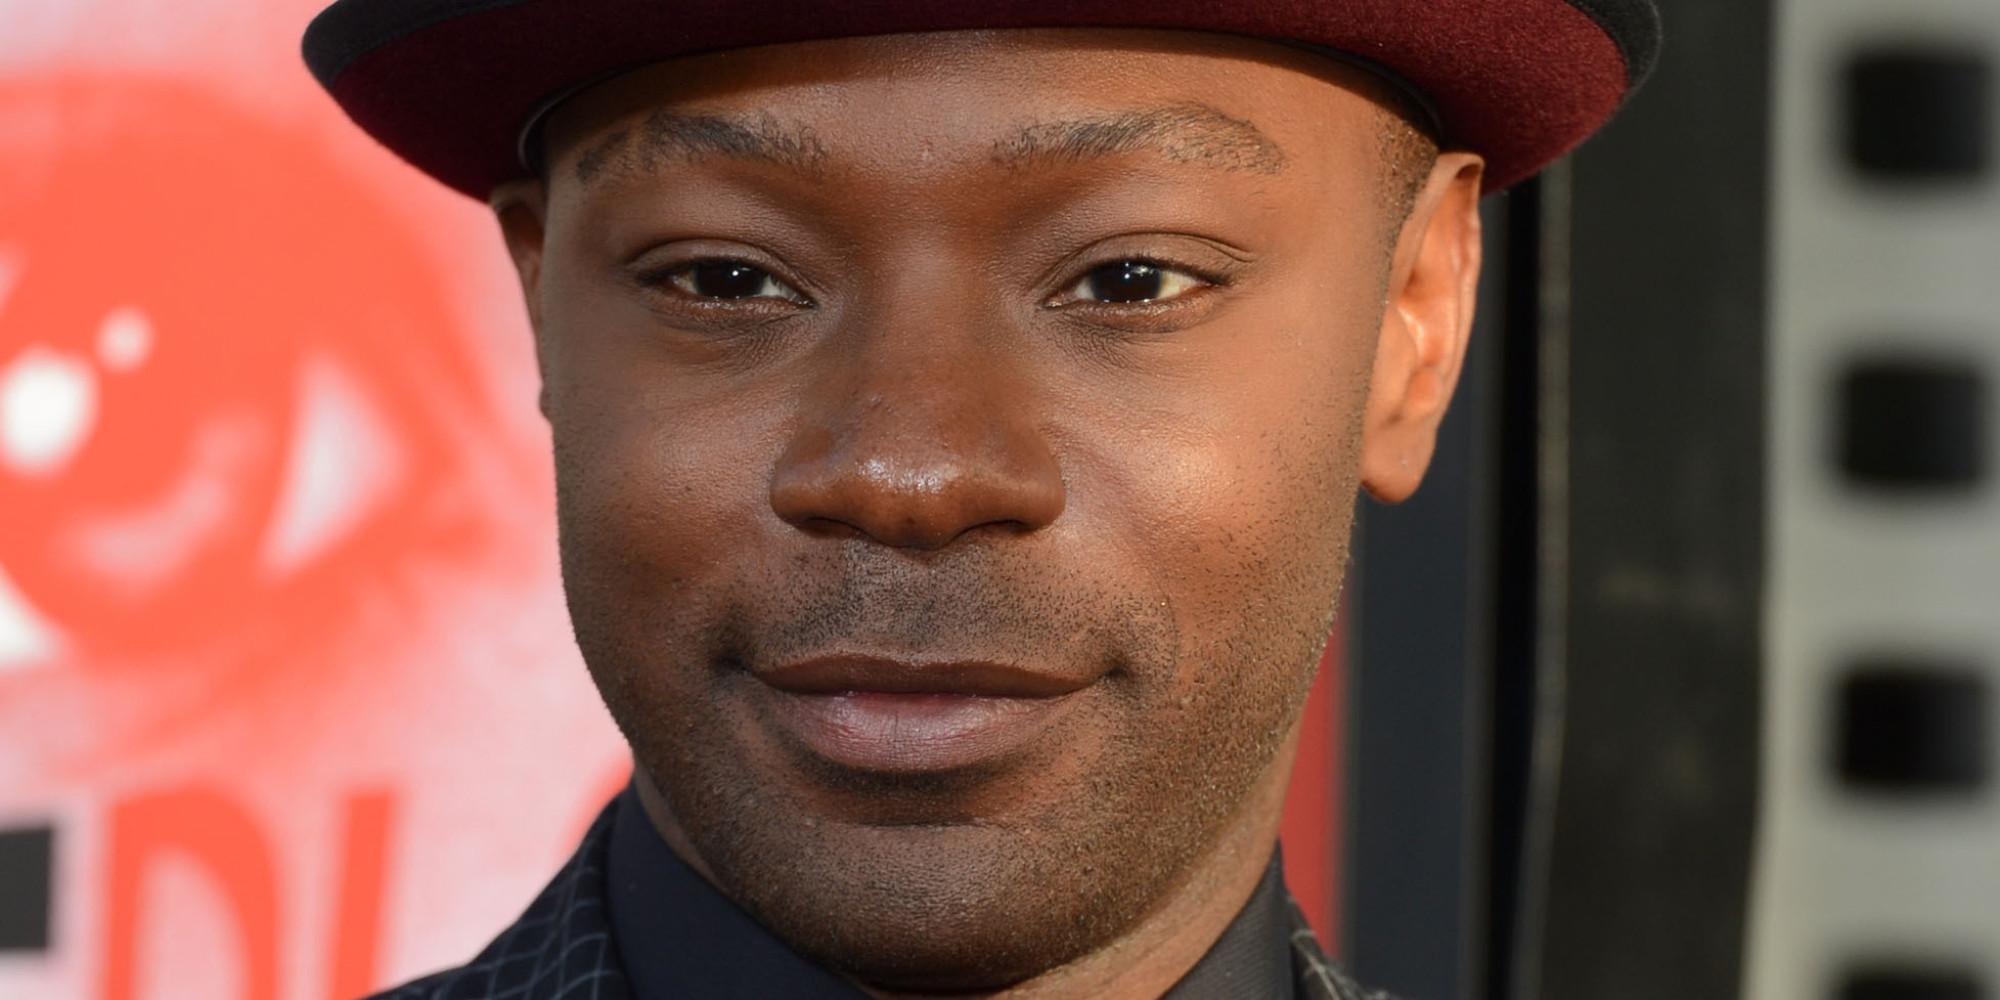 'True Blood' star from Bessemer dead at age 39